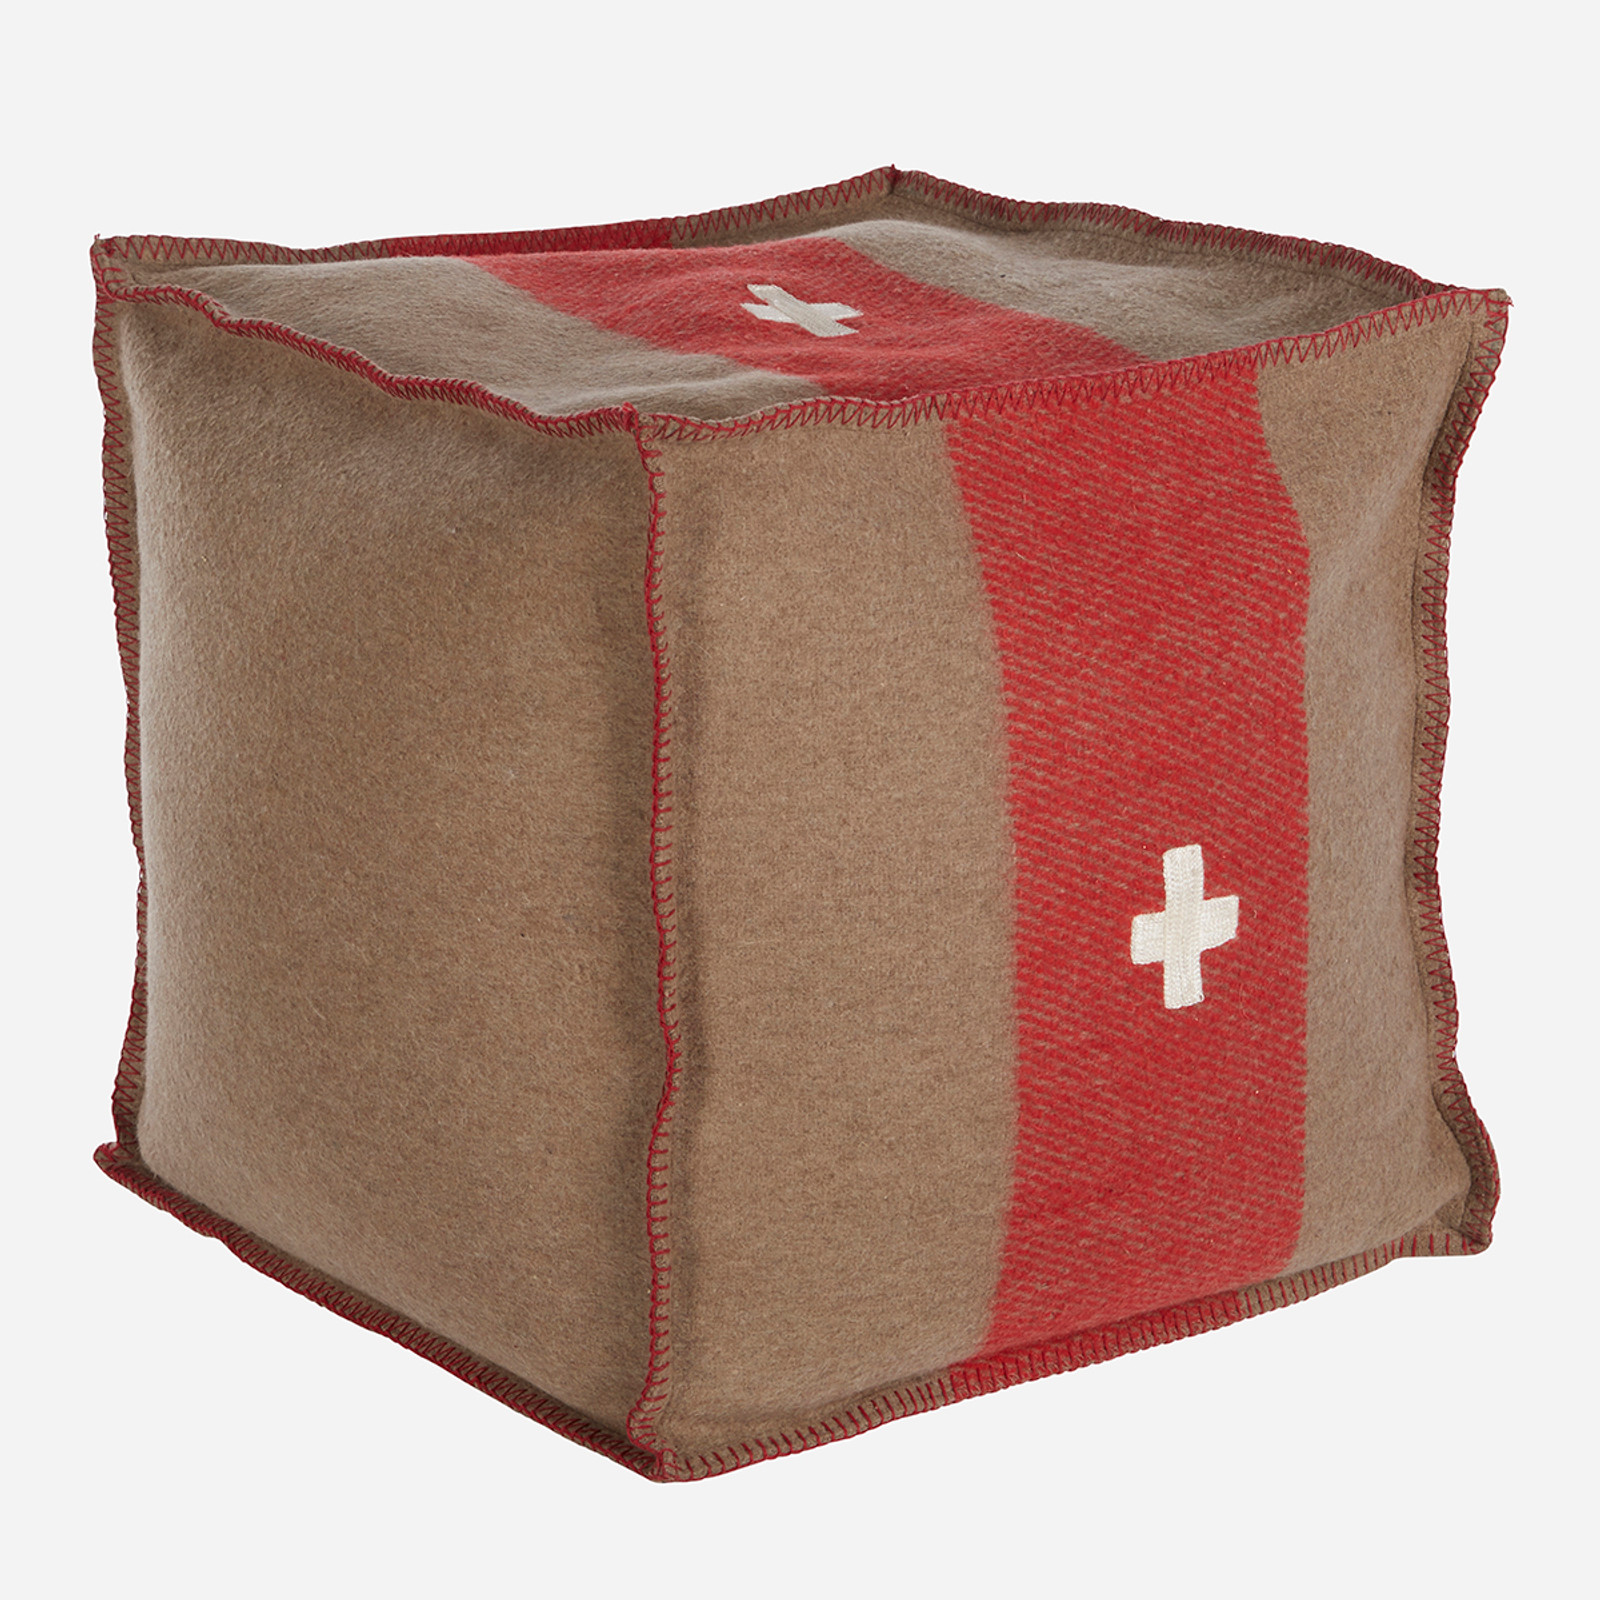 Swiss Army Pouf 18x18x18 Brown/Red (WHS Open Box Stock)